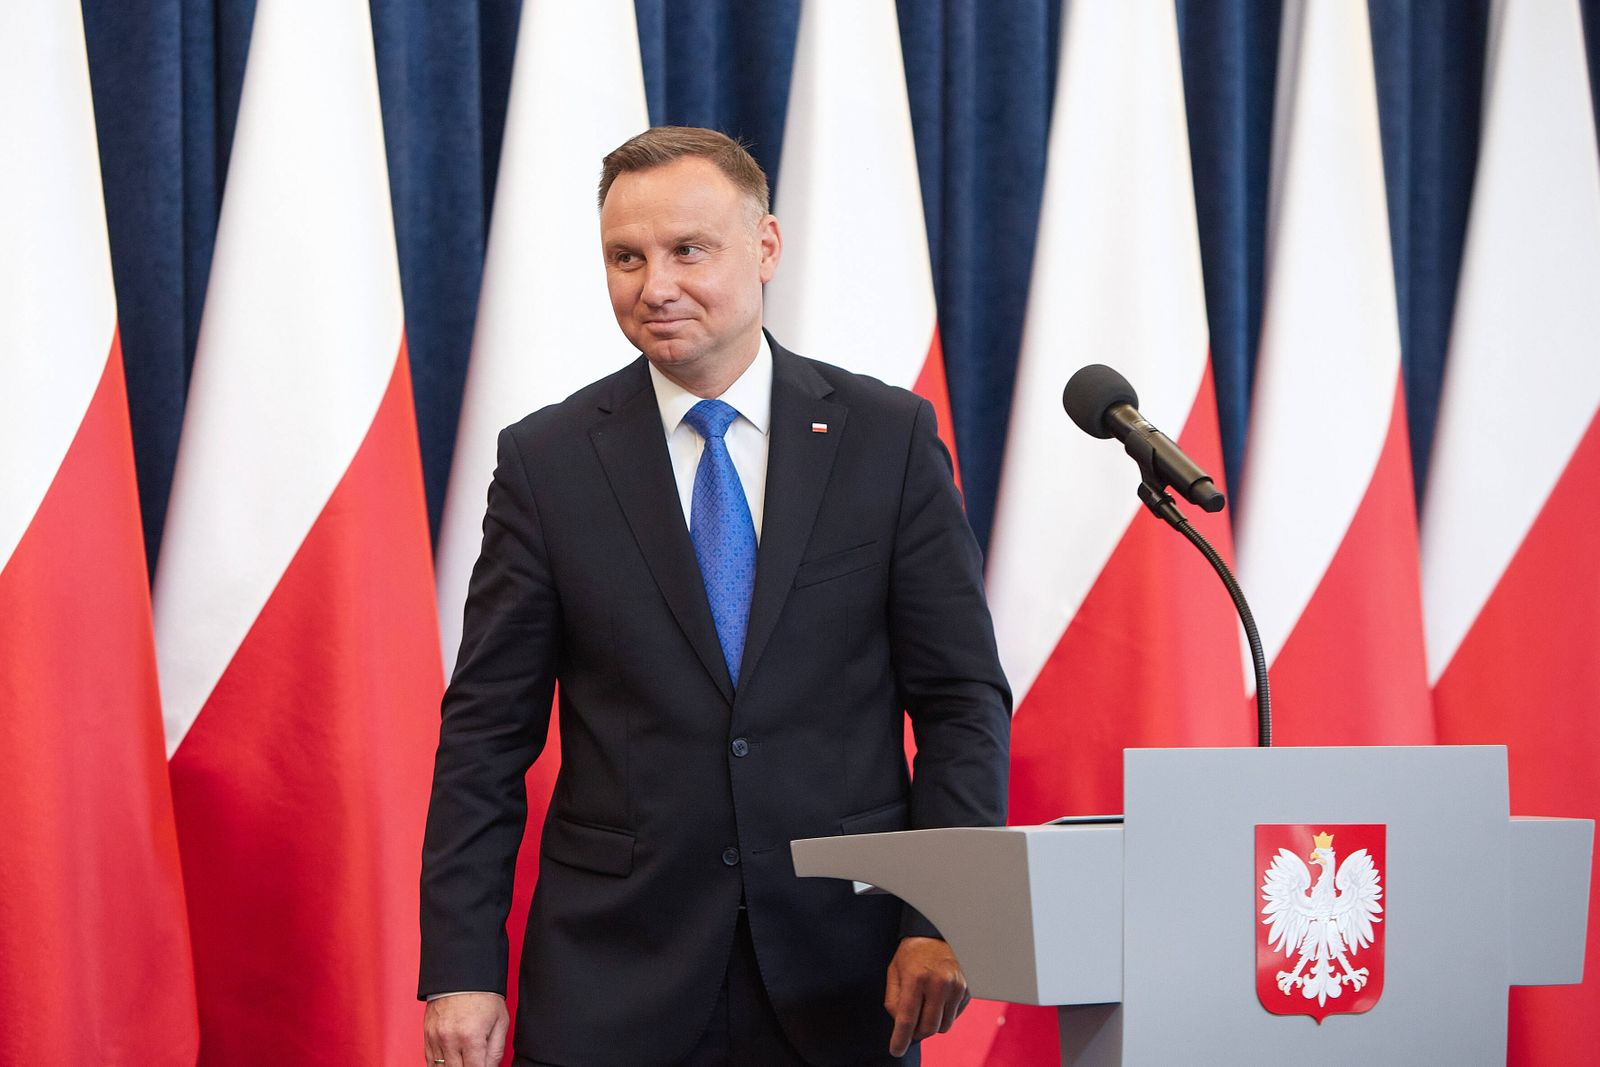 June 25, 2020, Warsaw, Mazovian, Poland: Briefing of President ANDRZEJ DUDA After the Meeting With Representatives of A